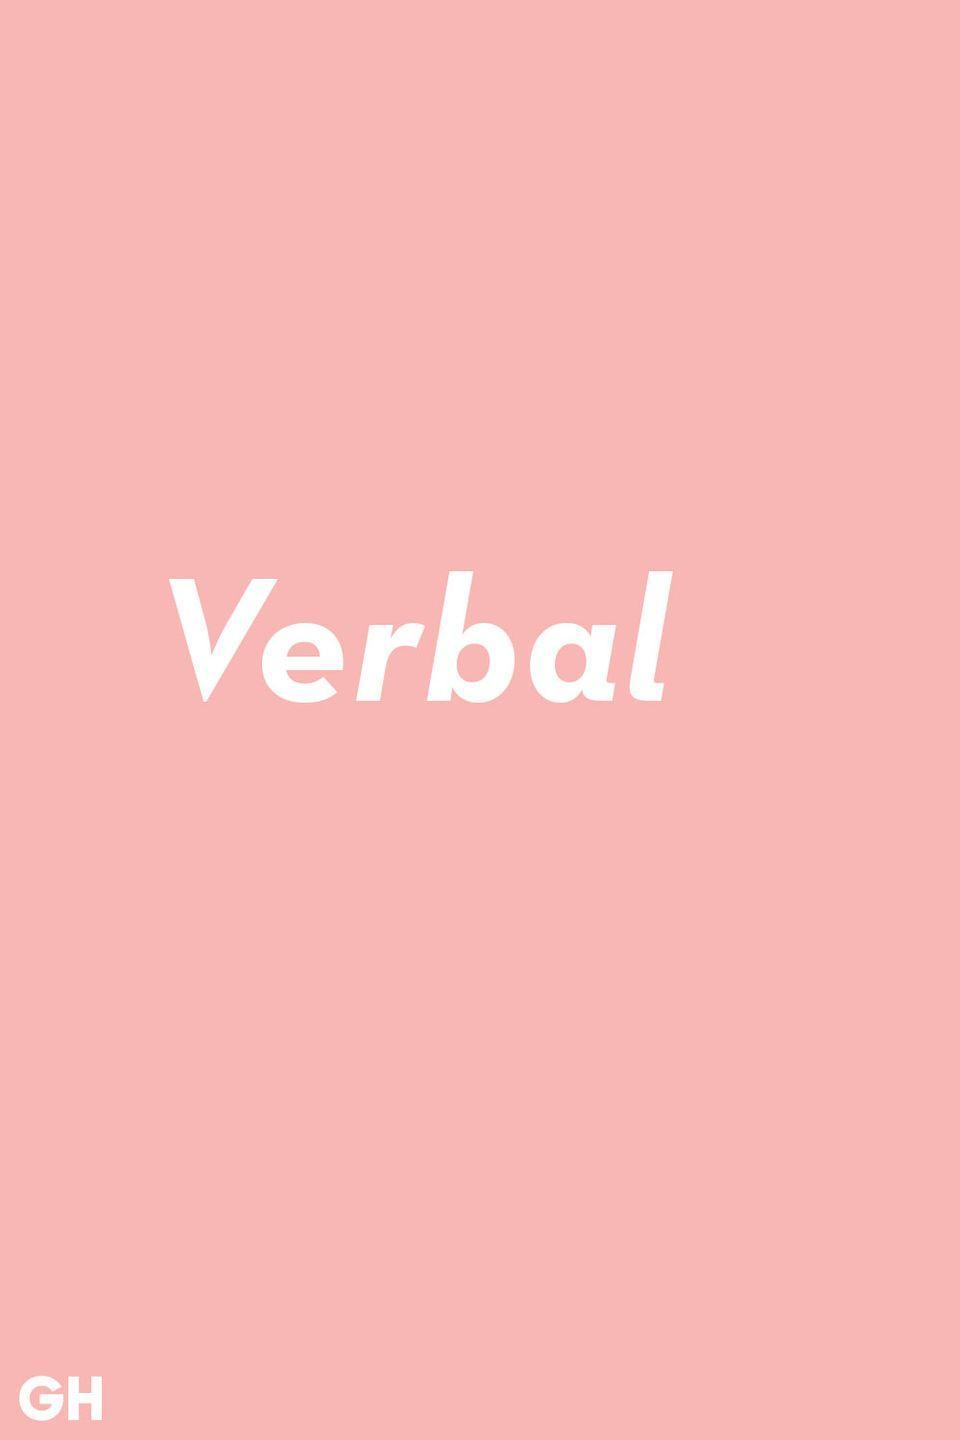 """<p>Verbal is more than just referring to the spoken word. The real definition is anything to do with language in any form.</p><p><strong>RELATED:</strong> <a href=""""https://www.goodhousekeeping.com/life/g22354891/famous-quotes/"""" rel=""""nofollow noopener"""" target=""""_blank"""" data-ylk=""""slk:60 Famous Quotes About Happiness, Love, and Career That Will Inspire You"""" class=""""link rapid-noclick-resp"""">60 Famous Quotes About Happiness, Love, and Career That Will Inspire You</a></p>"""